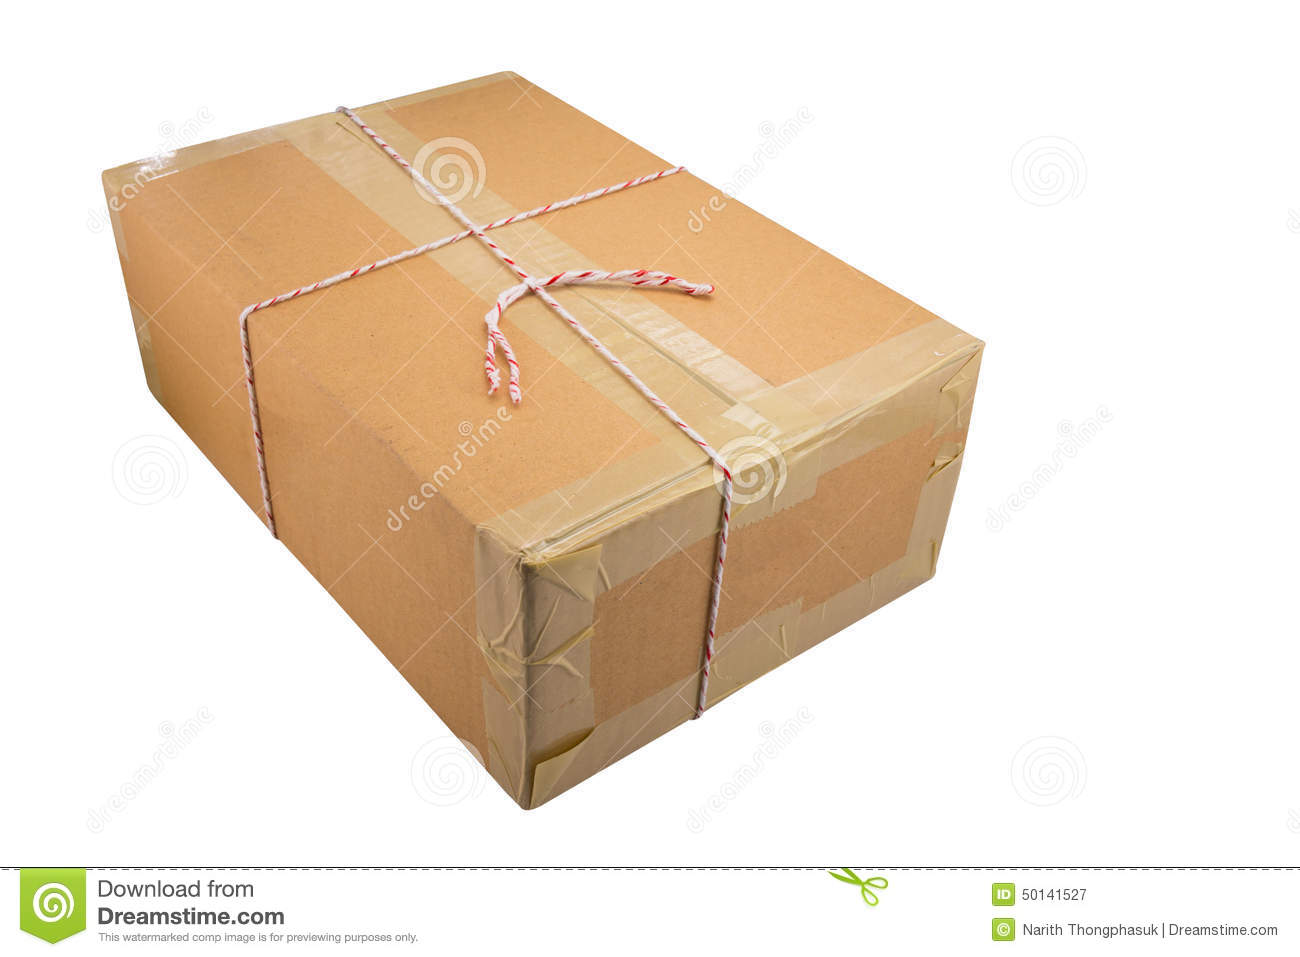 Closed cardboard box taped up and isolated